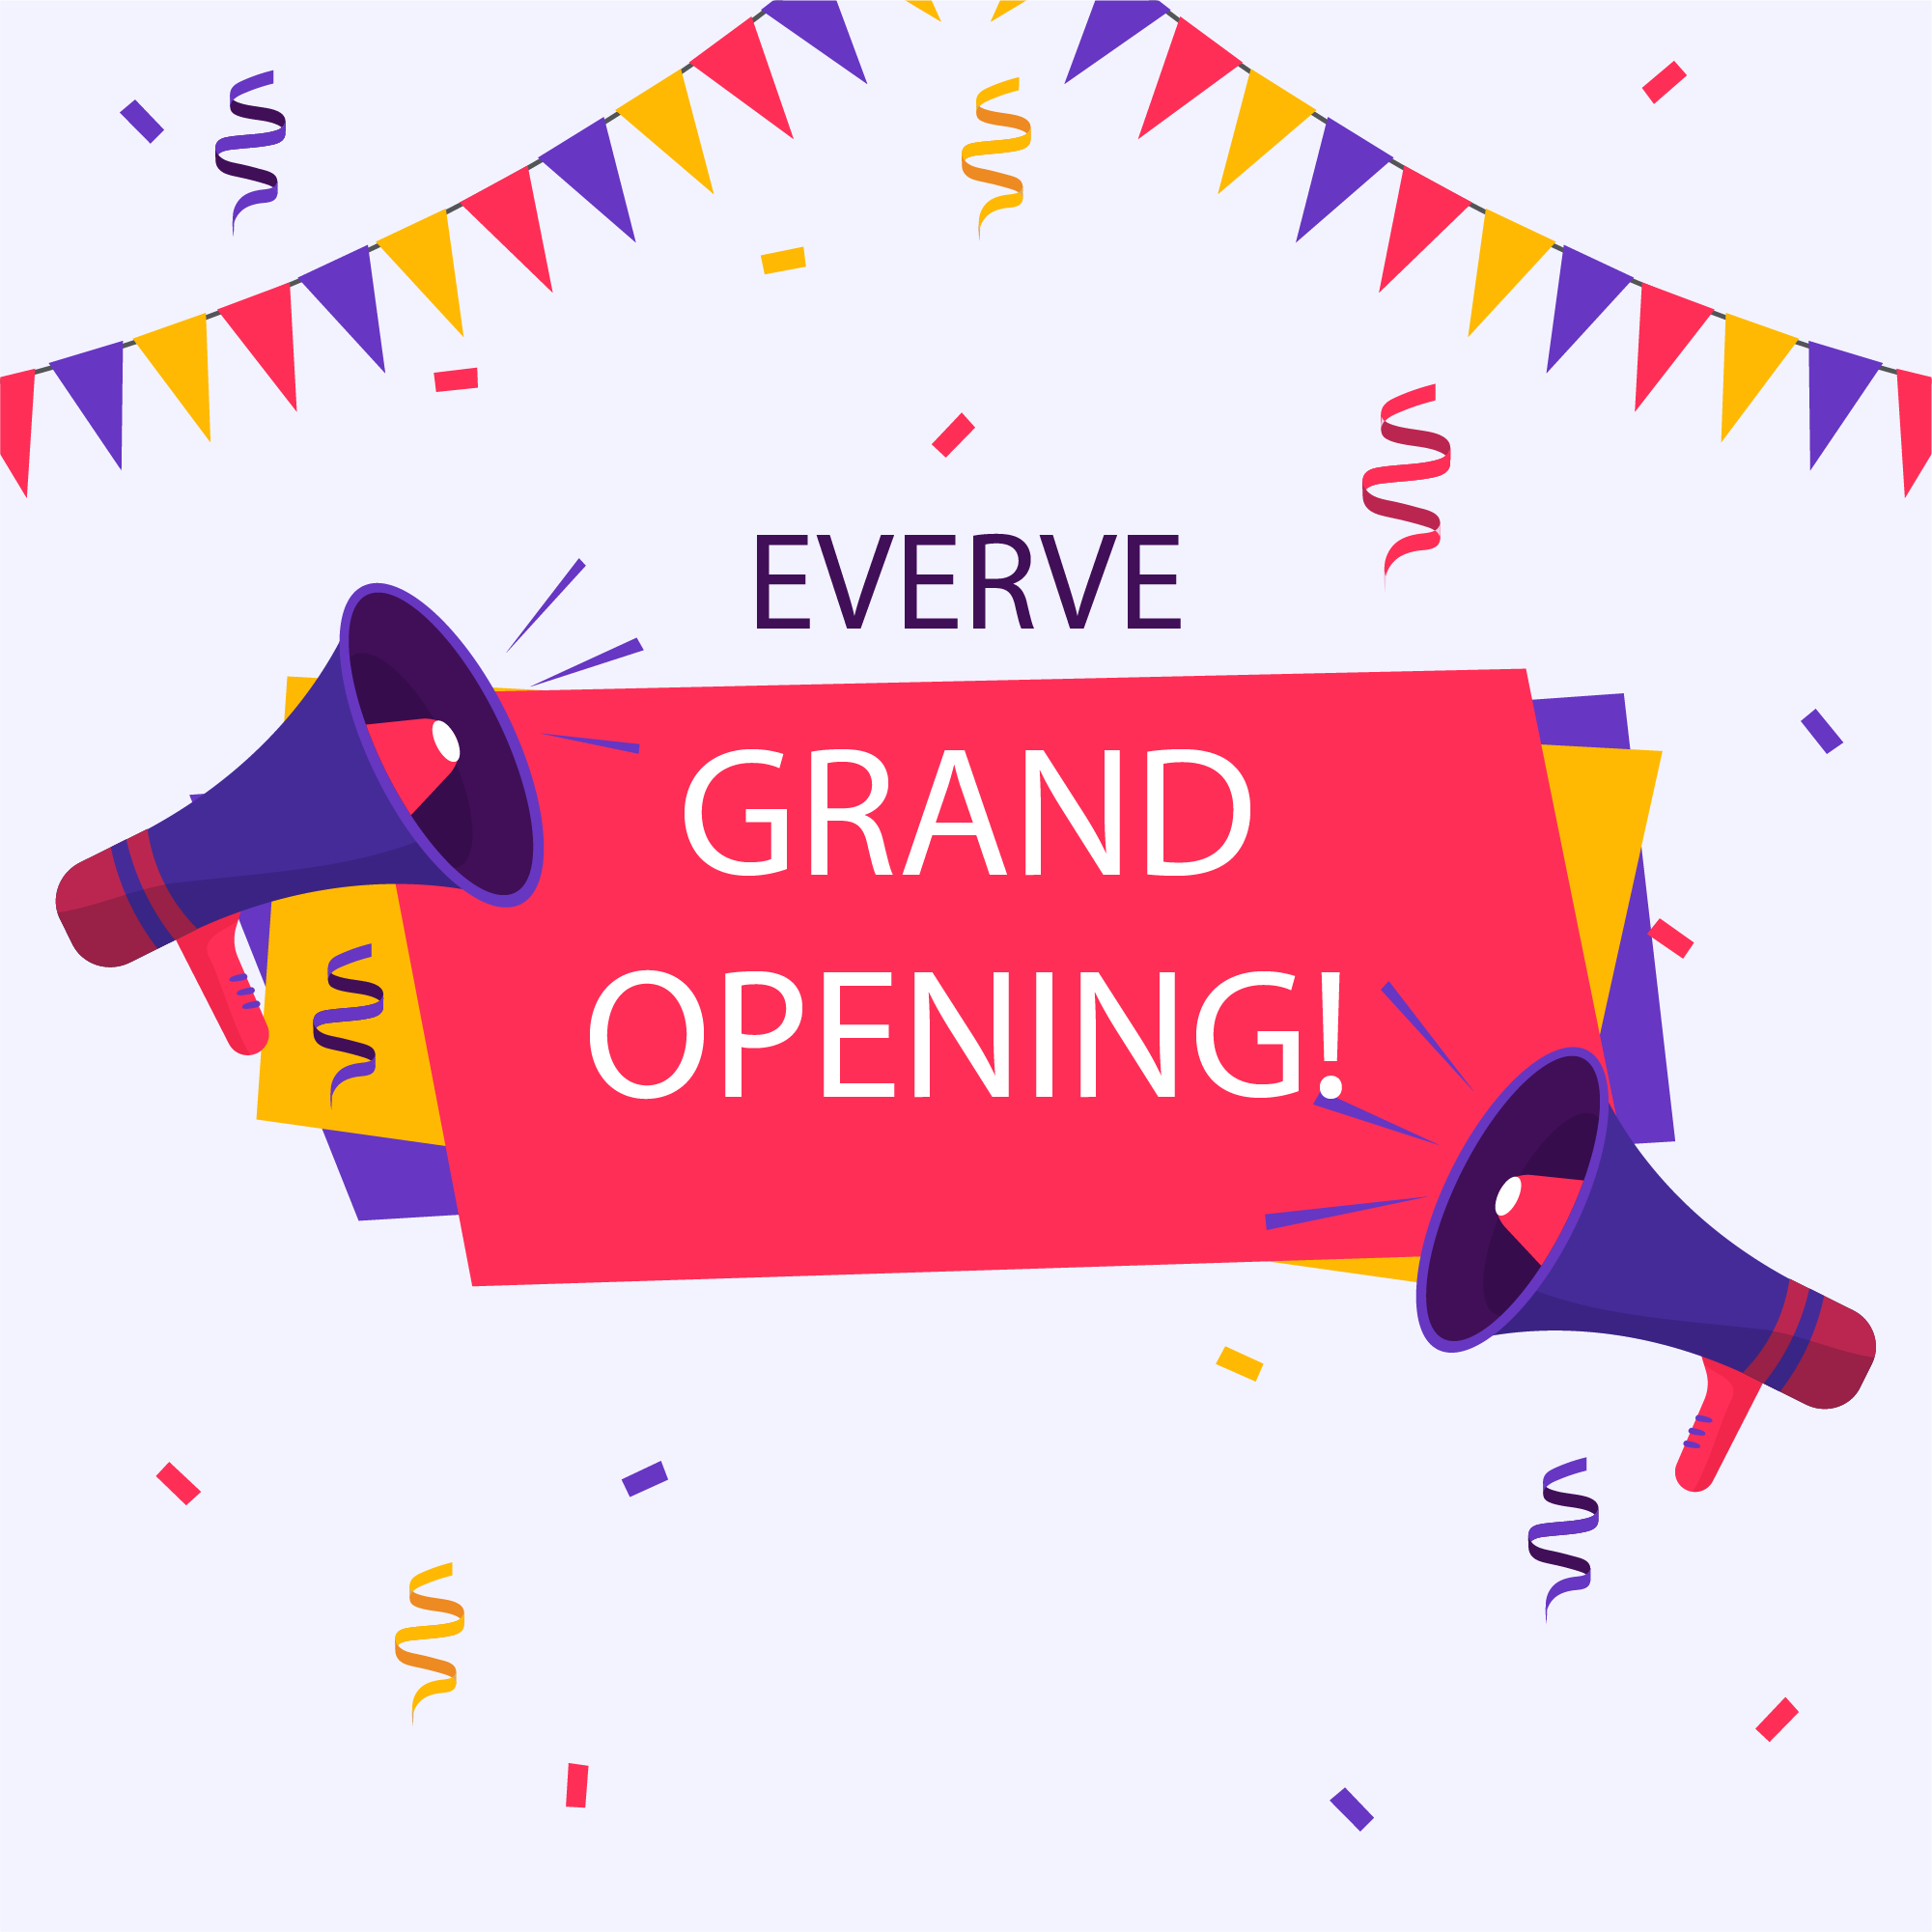 🎉 Everve is here! And we are open!